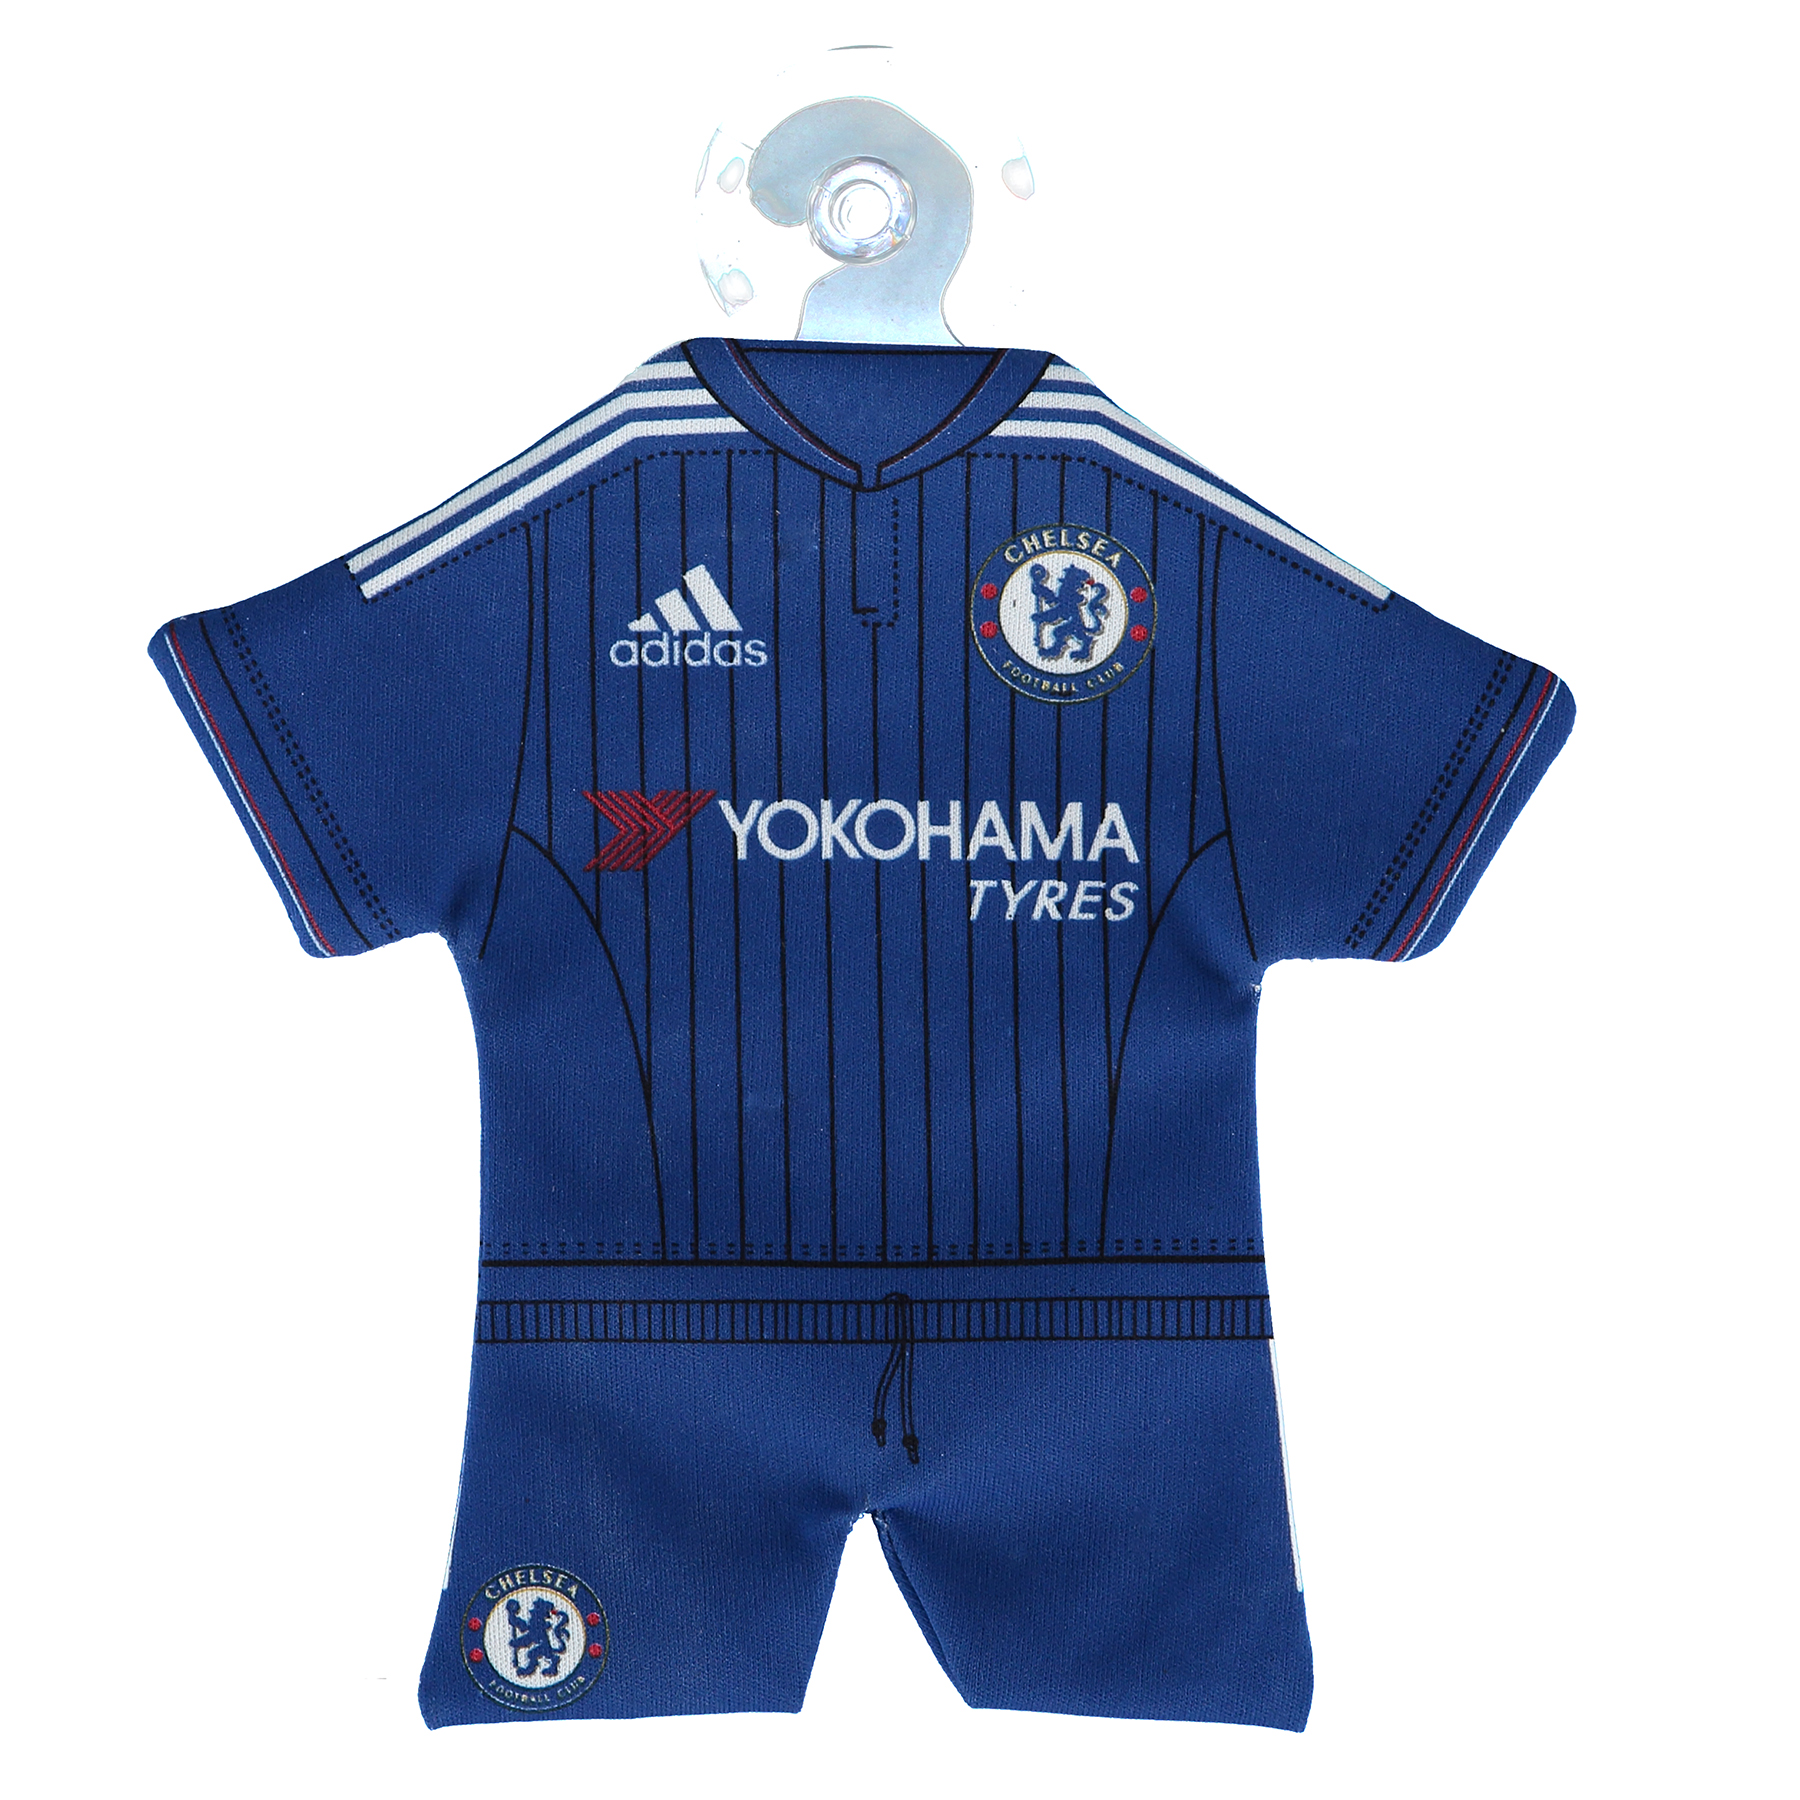 Chelsea 15/16 Home Car Mini Kit Mini car kit hanger complete with replica design of 2015/16 home shirt. Material: Polyester. Includes stopper for hanging. Size 18cm(l).